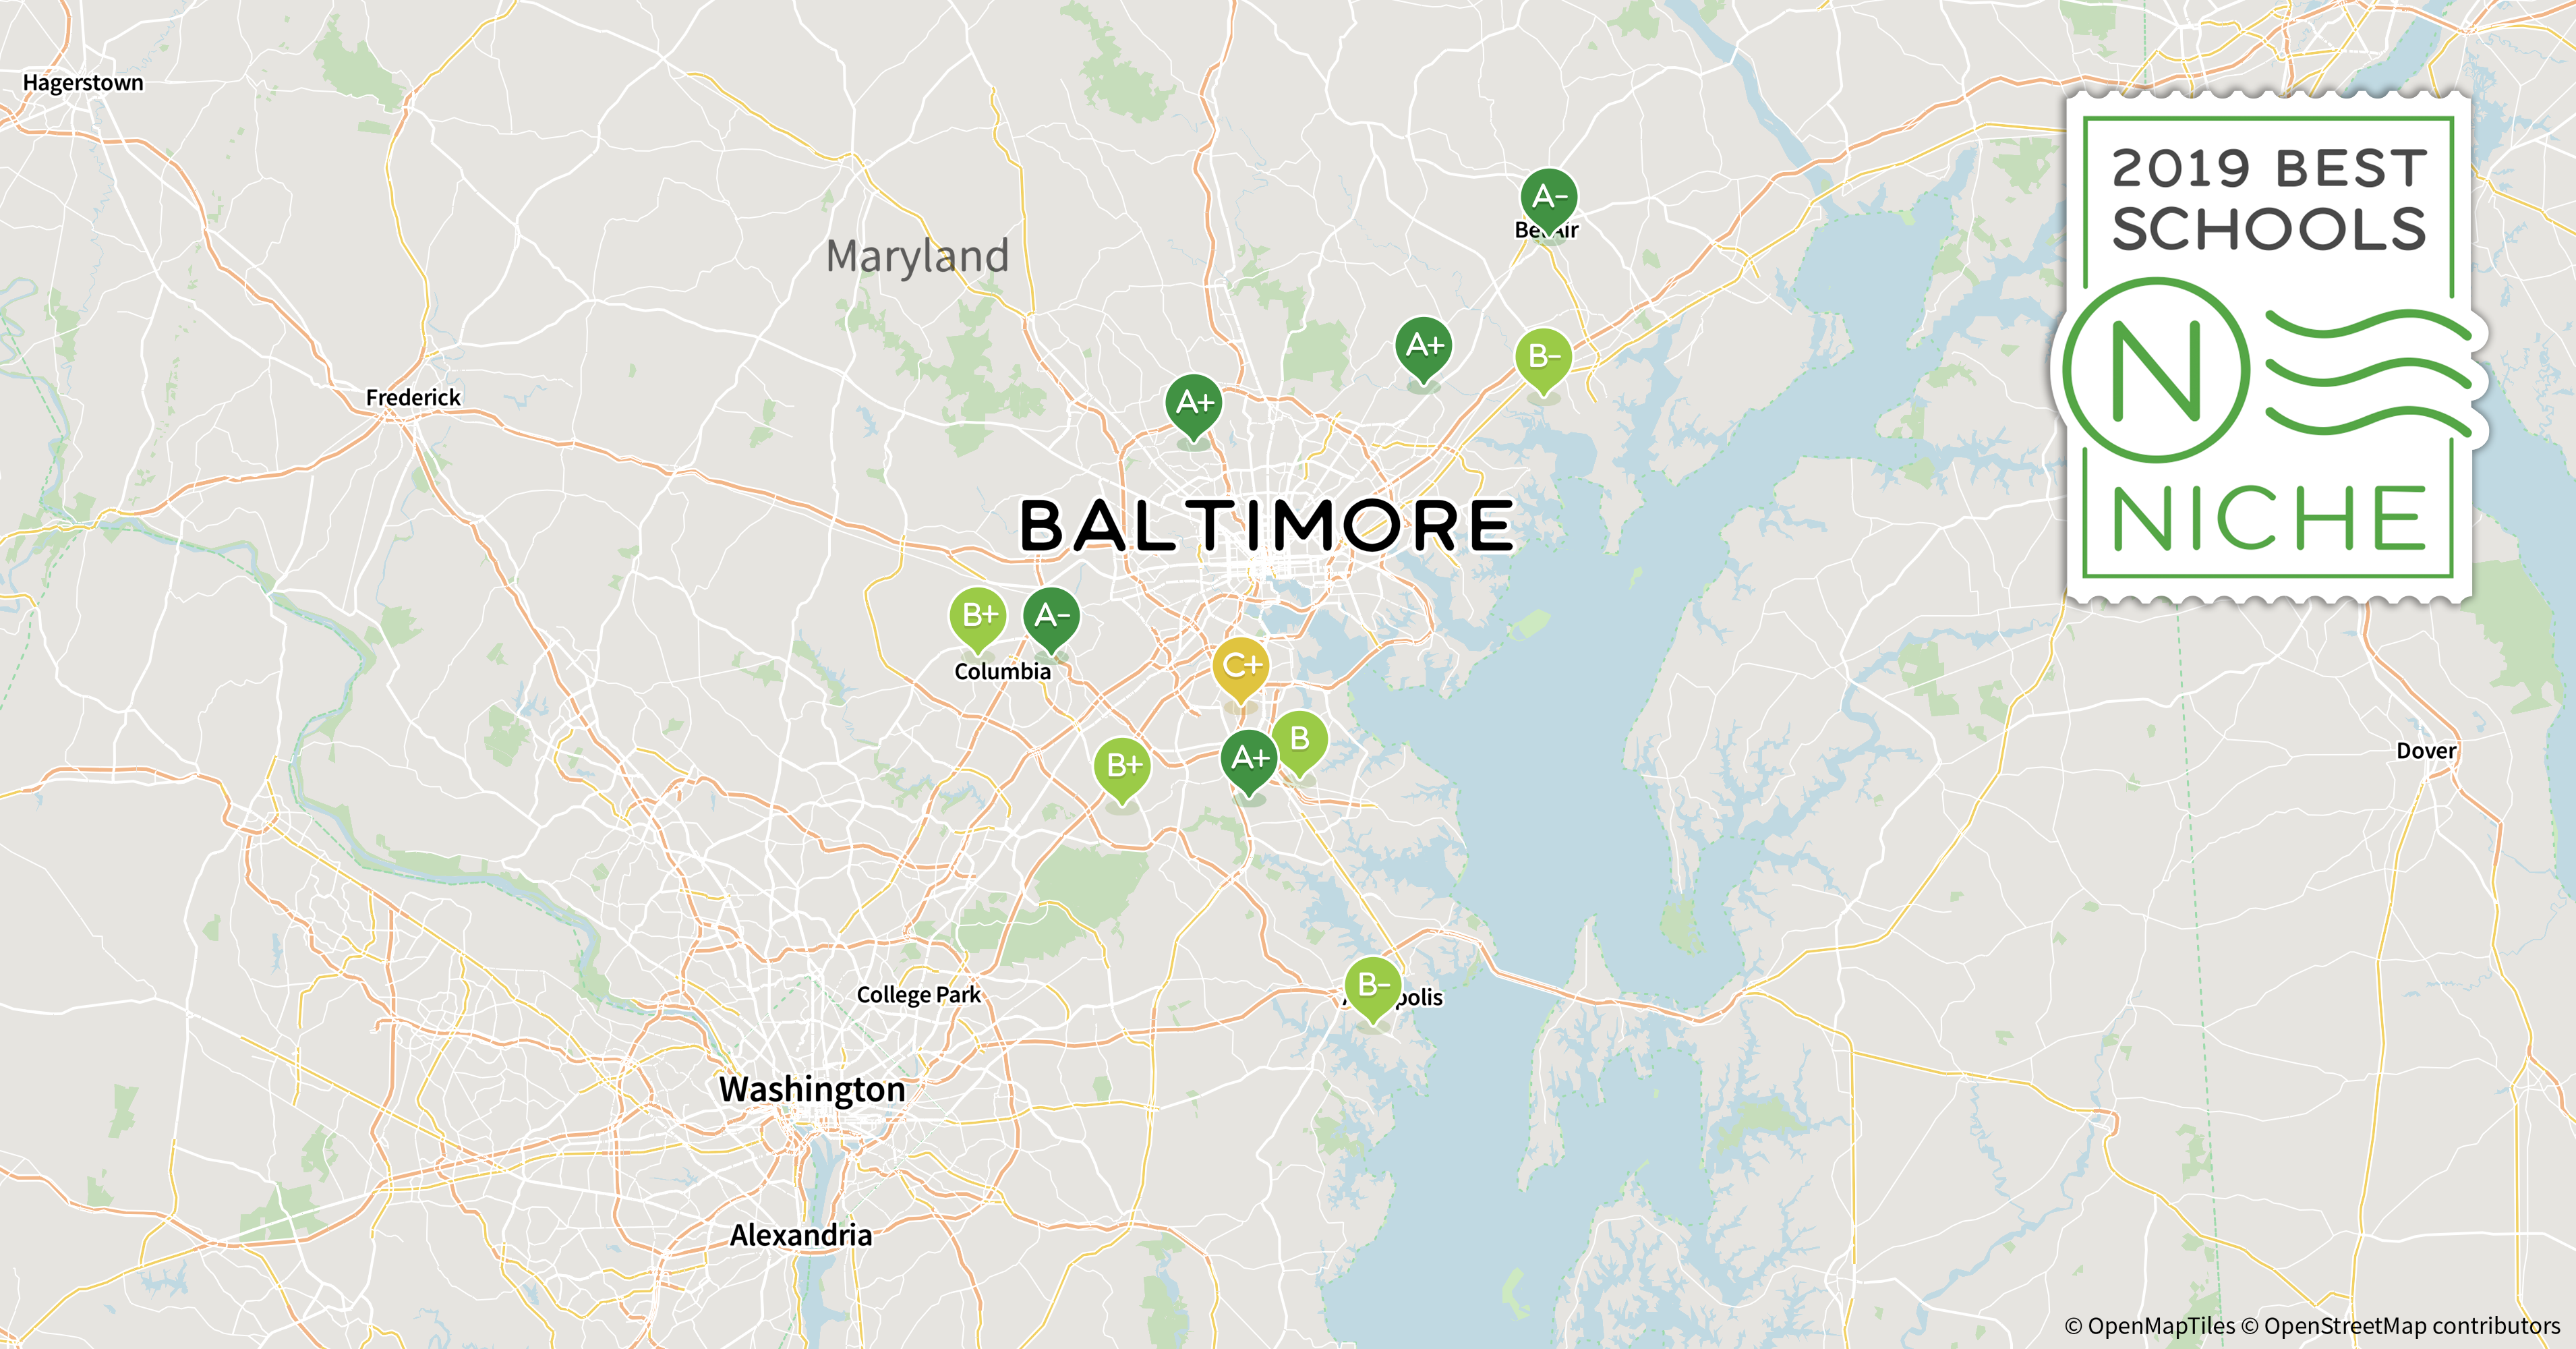 2019 Best School Districts In The Baltimore Area Niche